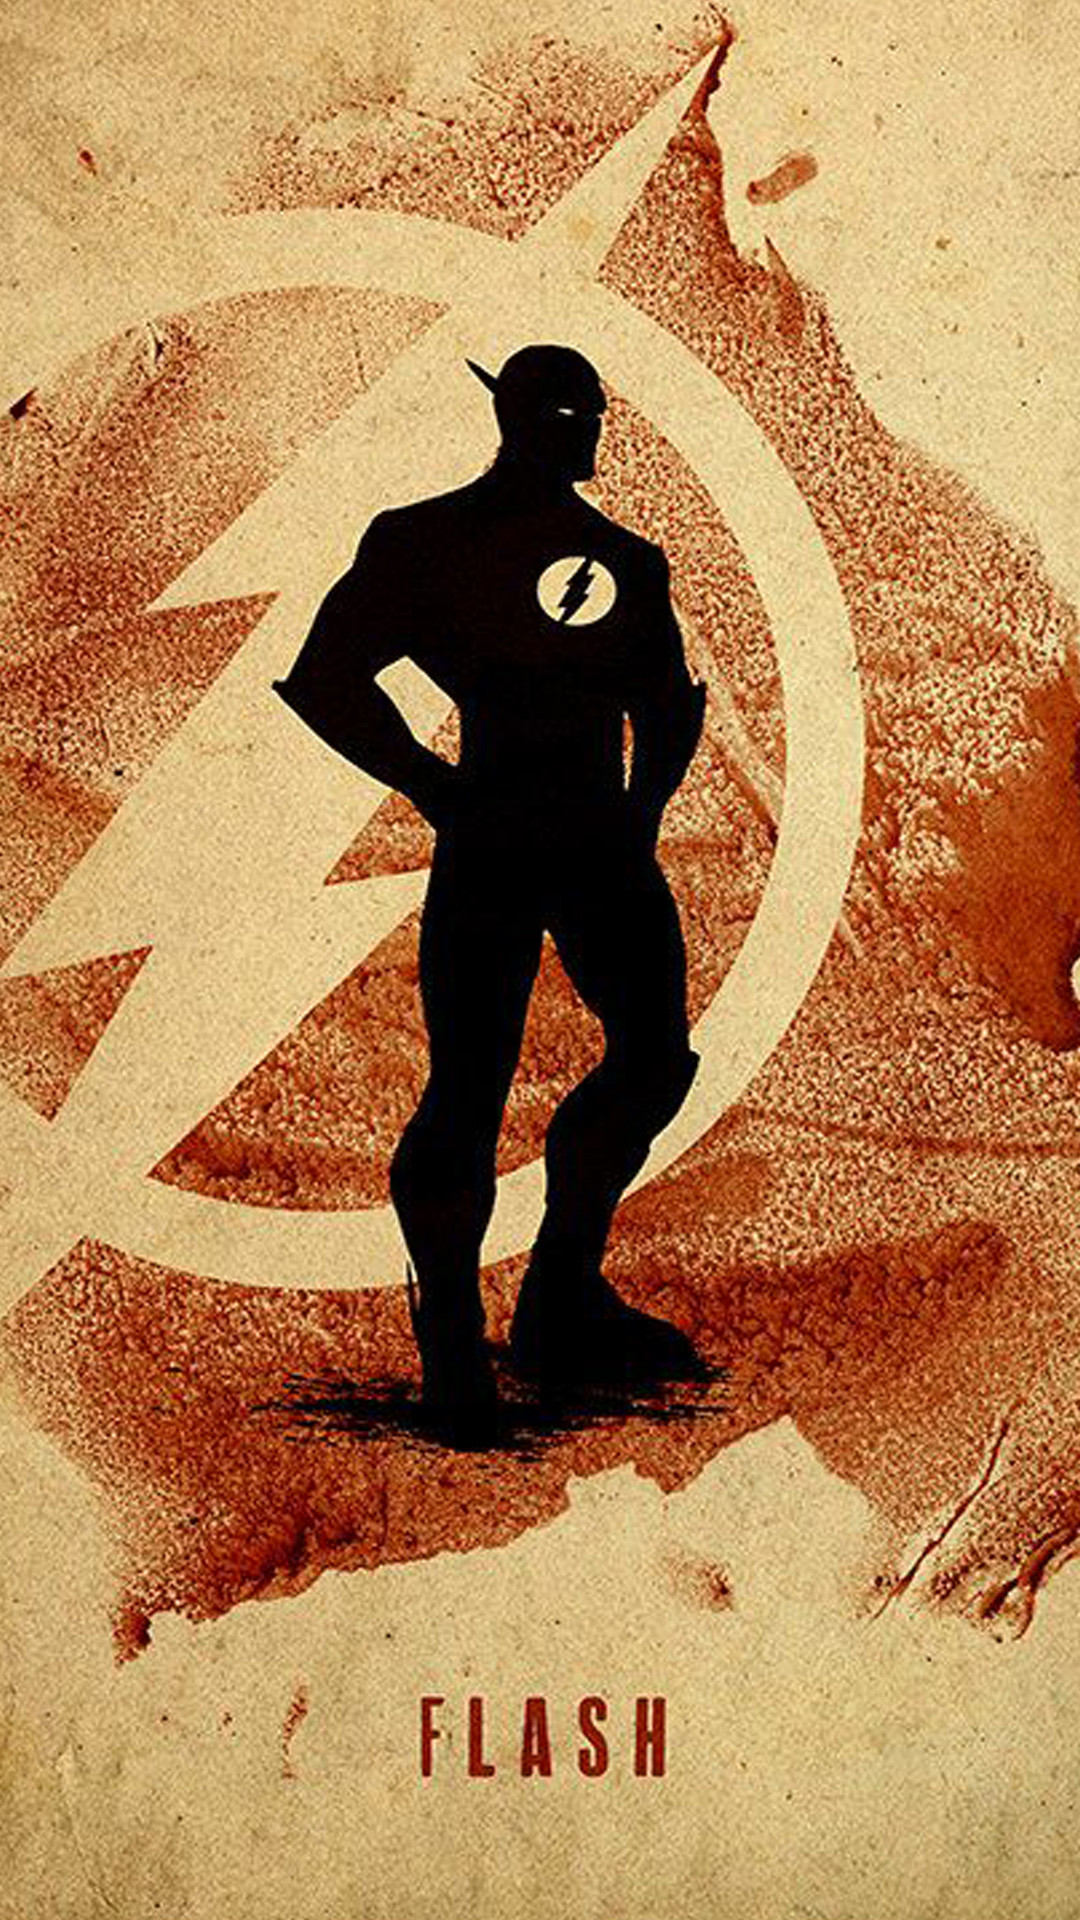 flash dc wallpaper, the flash superhero images